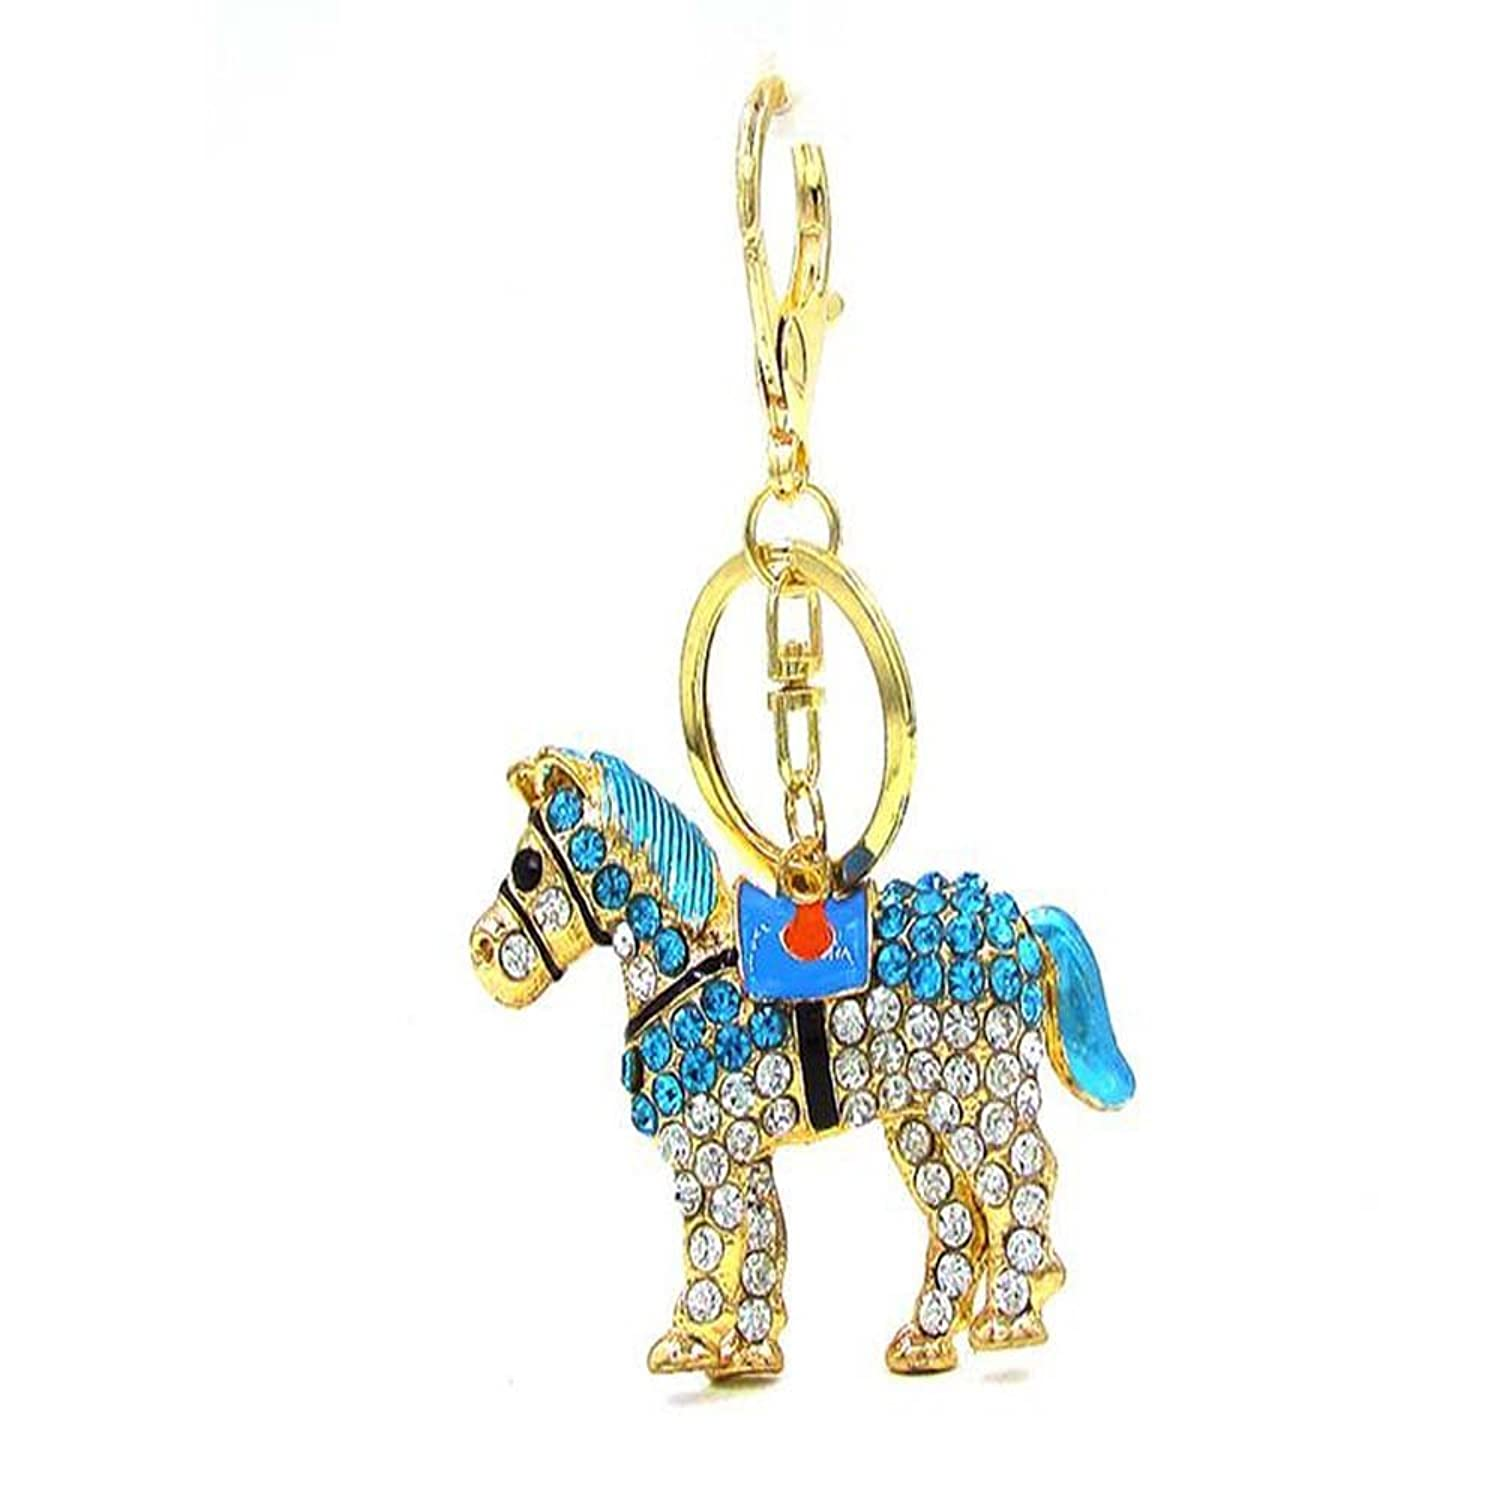 Bbshop Key Chain Cute Luxury Horse Design Keychain Car Keys